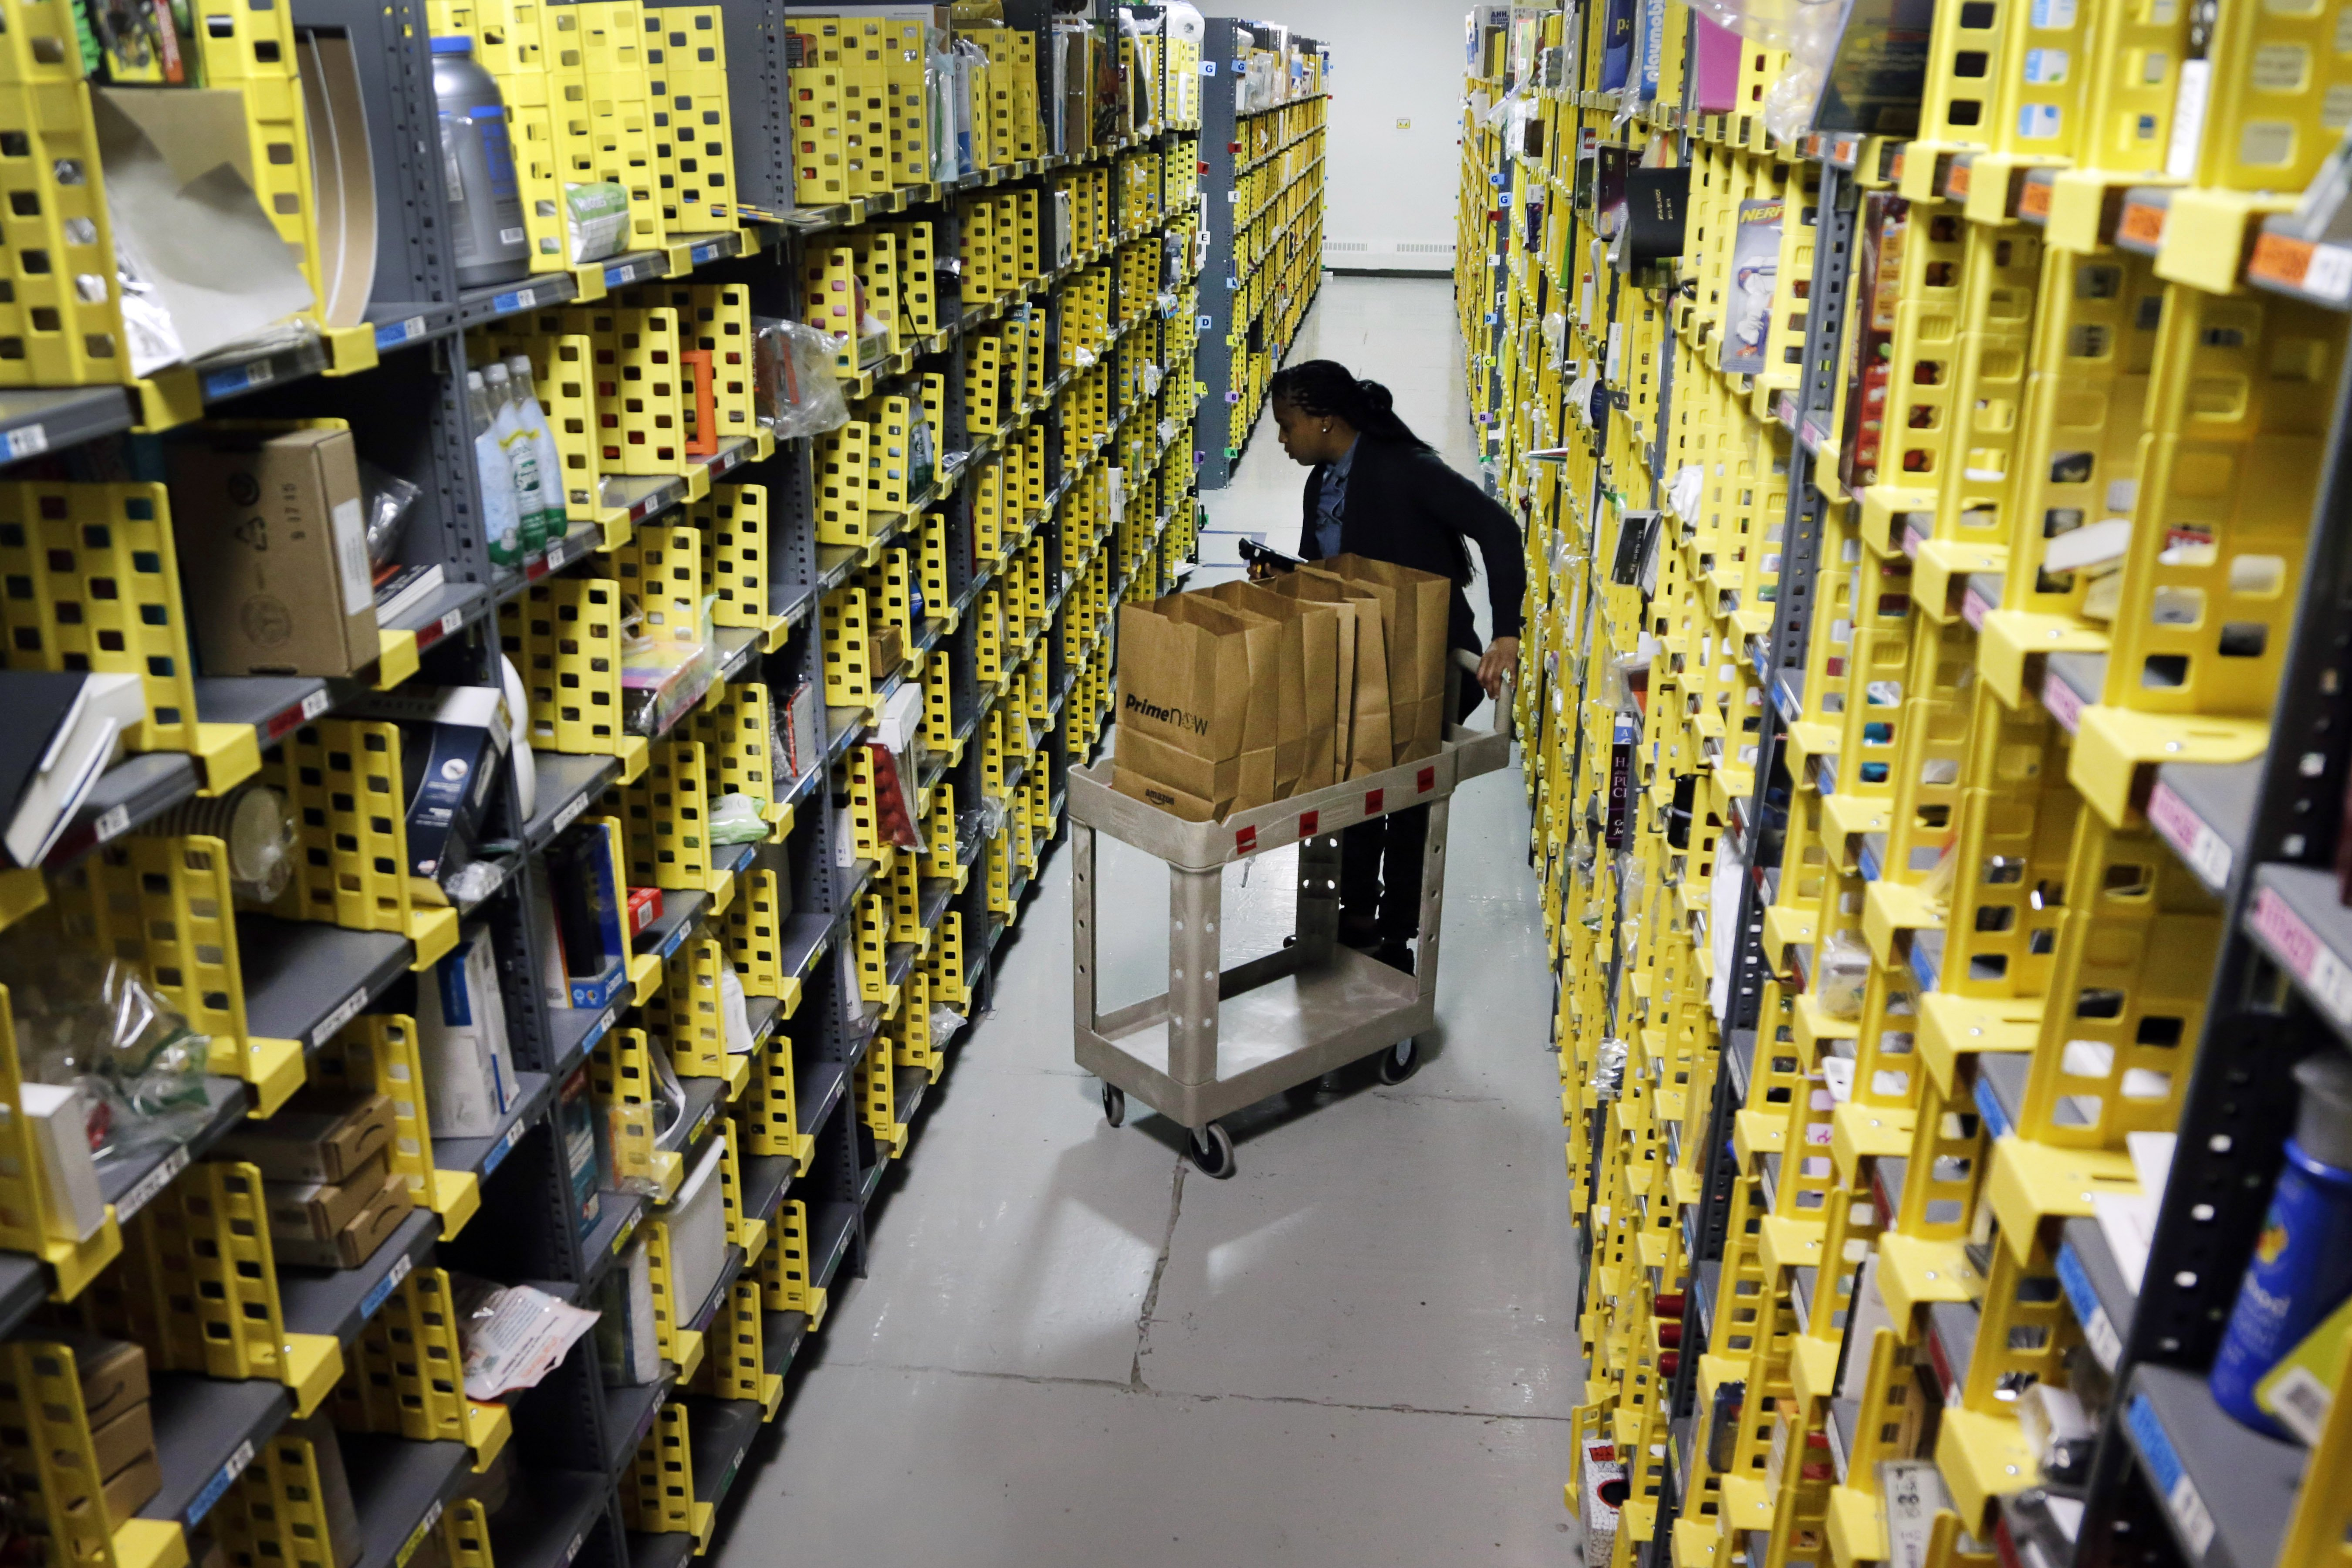 Amazon Prime employee Alicia Jackson hunts for items at the company's urban fulfillment facility that have been ordered by customers on Dec. 22, 2015, in New York.